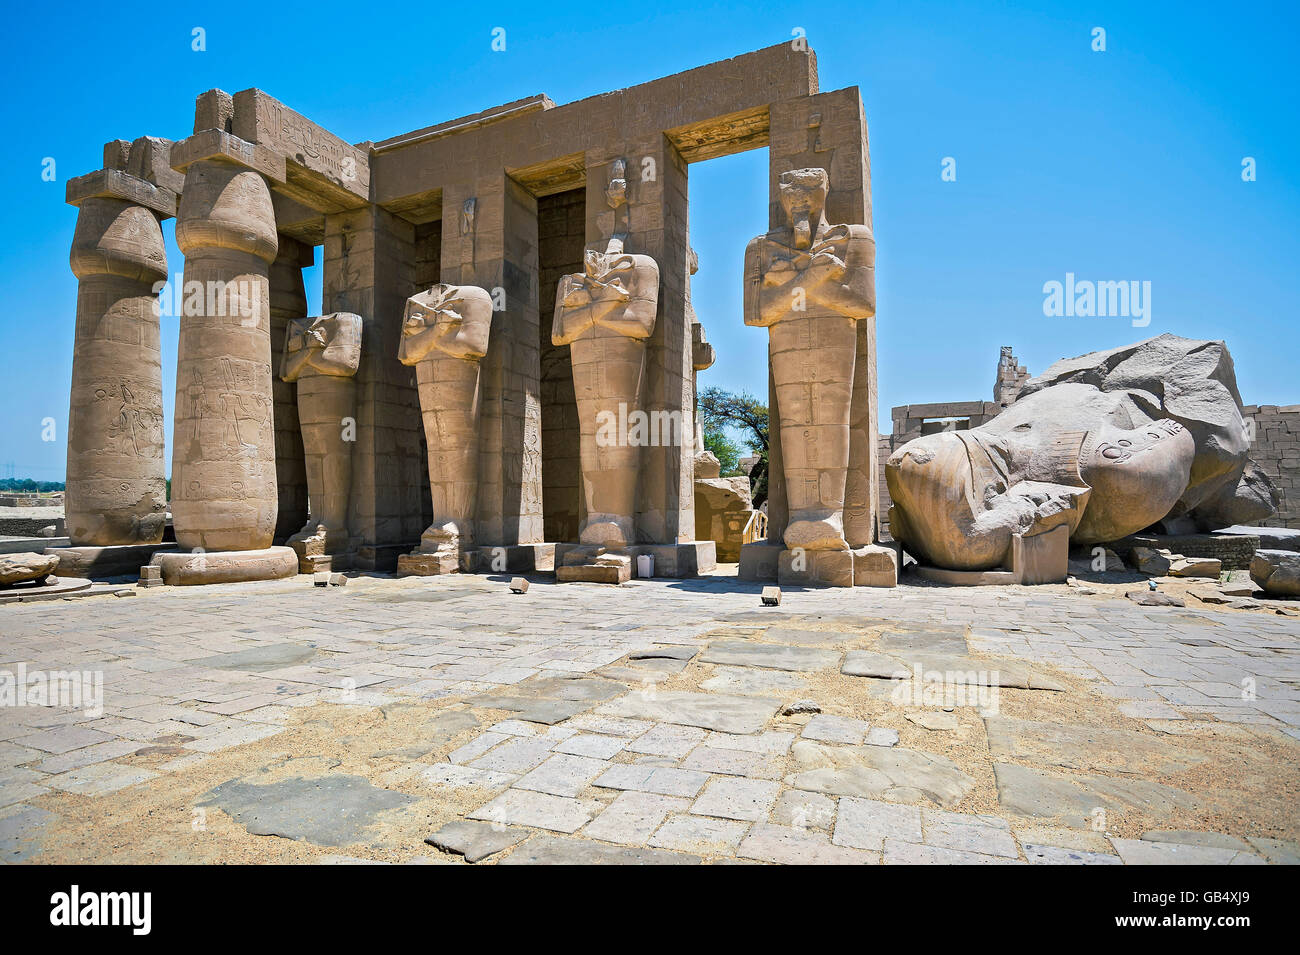 Osiris-pillars and the remains of a colossal statue of Ramses, Ramesseum Temple, Luxor, Egypt - Stock Image